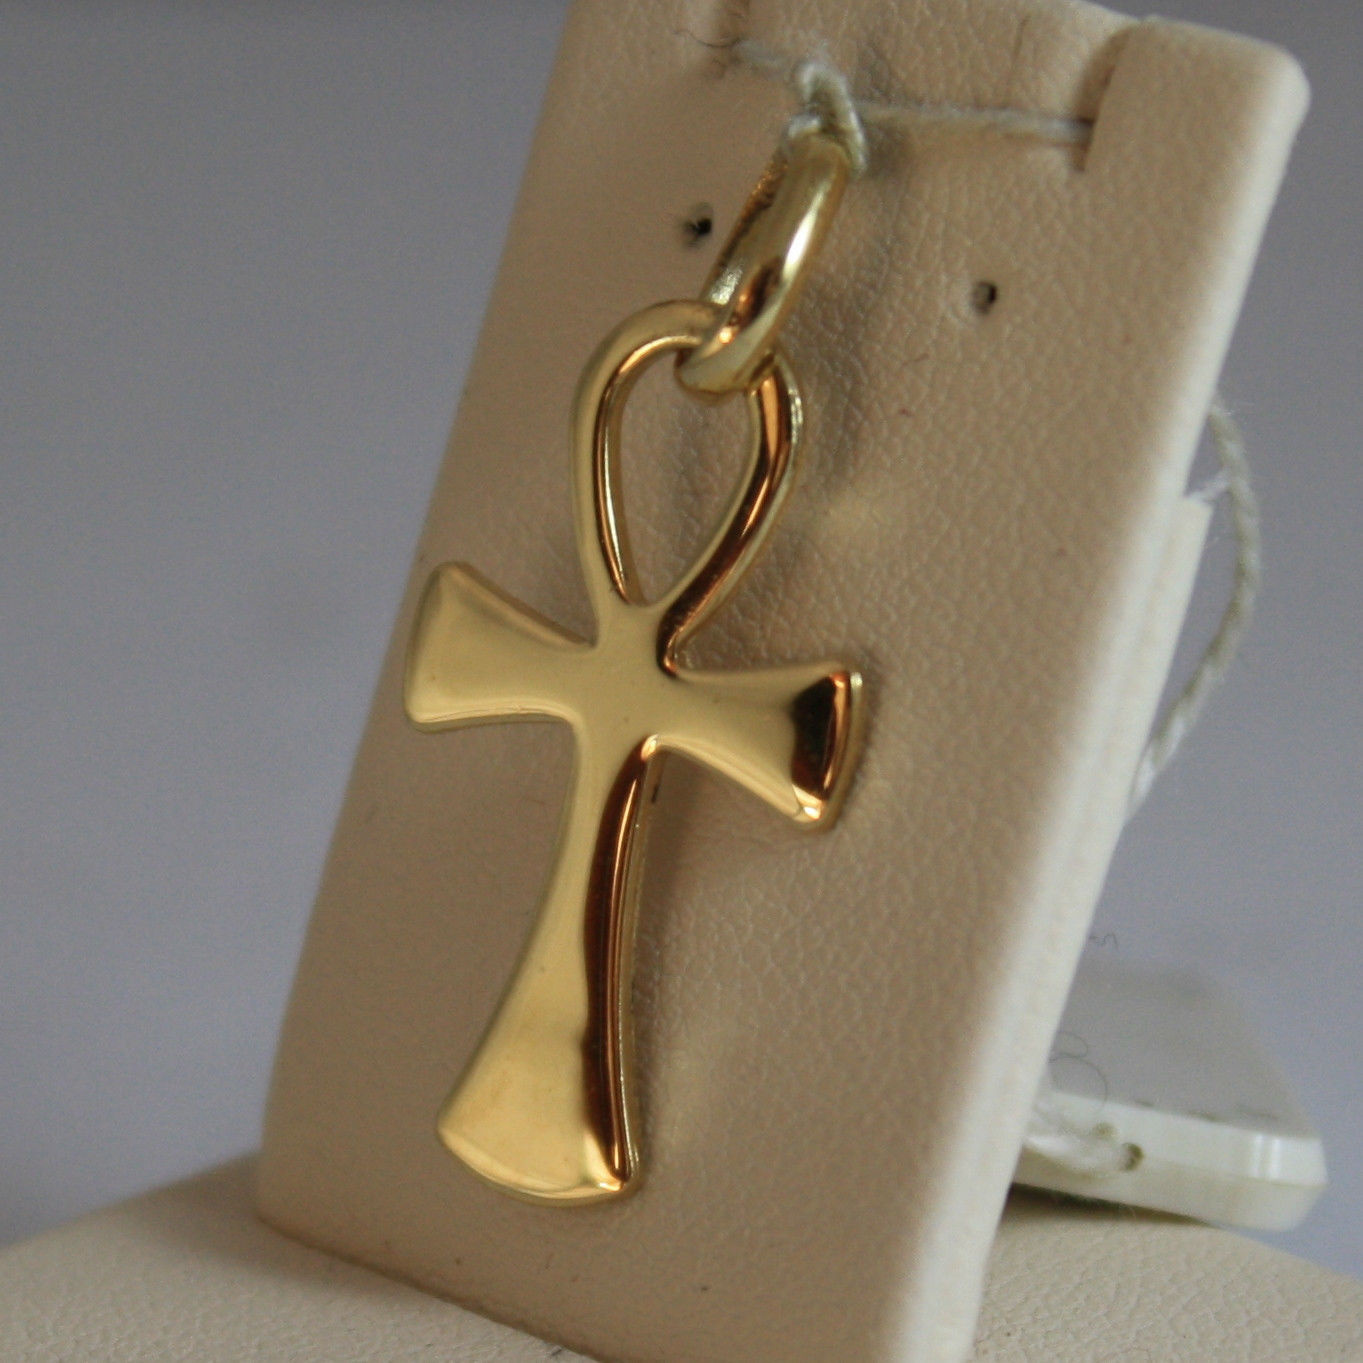 SOLID 18K YELLOW GOLD, SHINY CROSS OF LIFE PENDANT, LENGTH 1,1 IN MADE IN ITALY